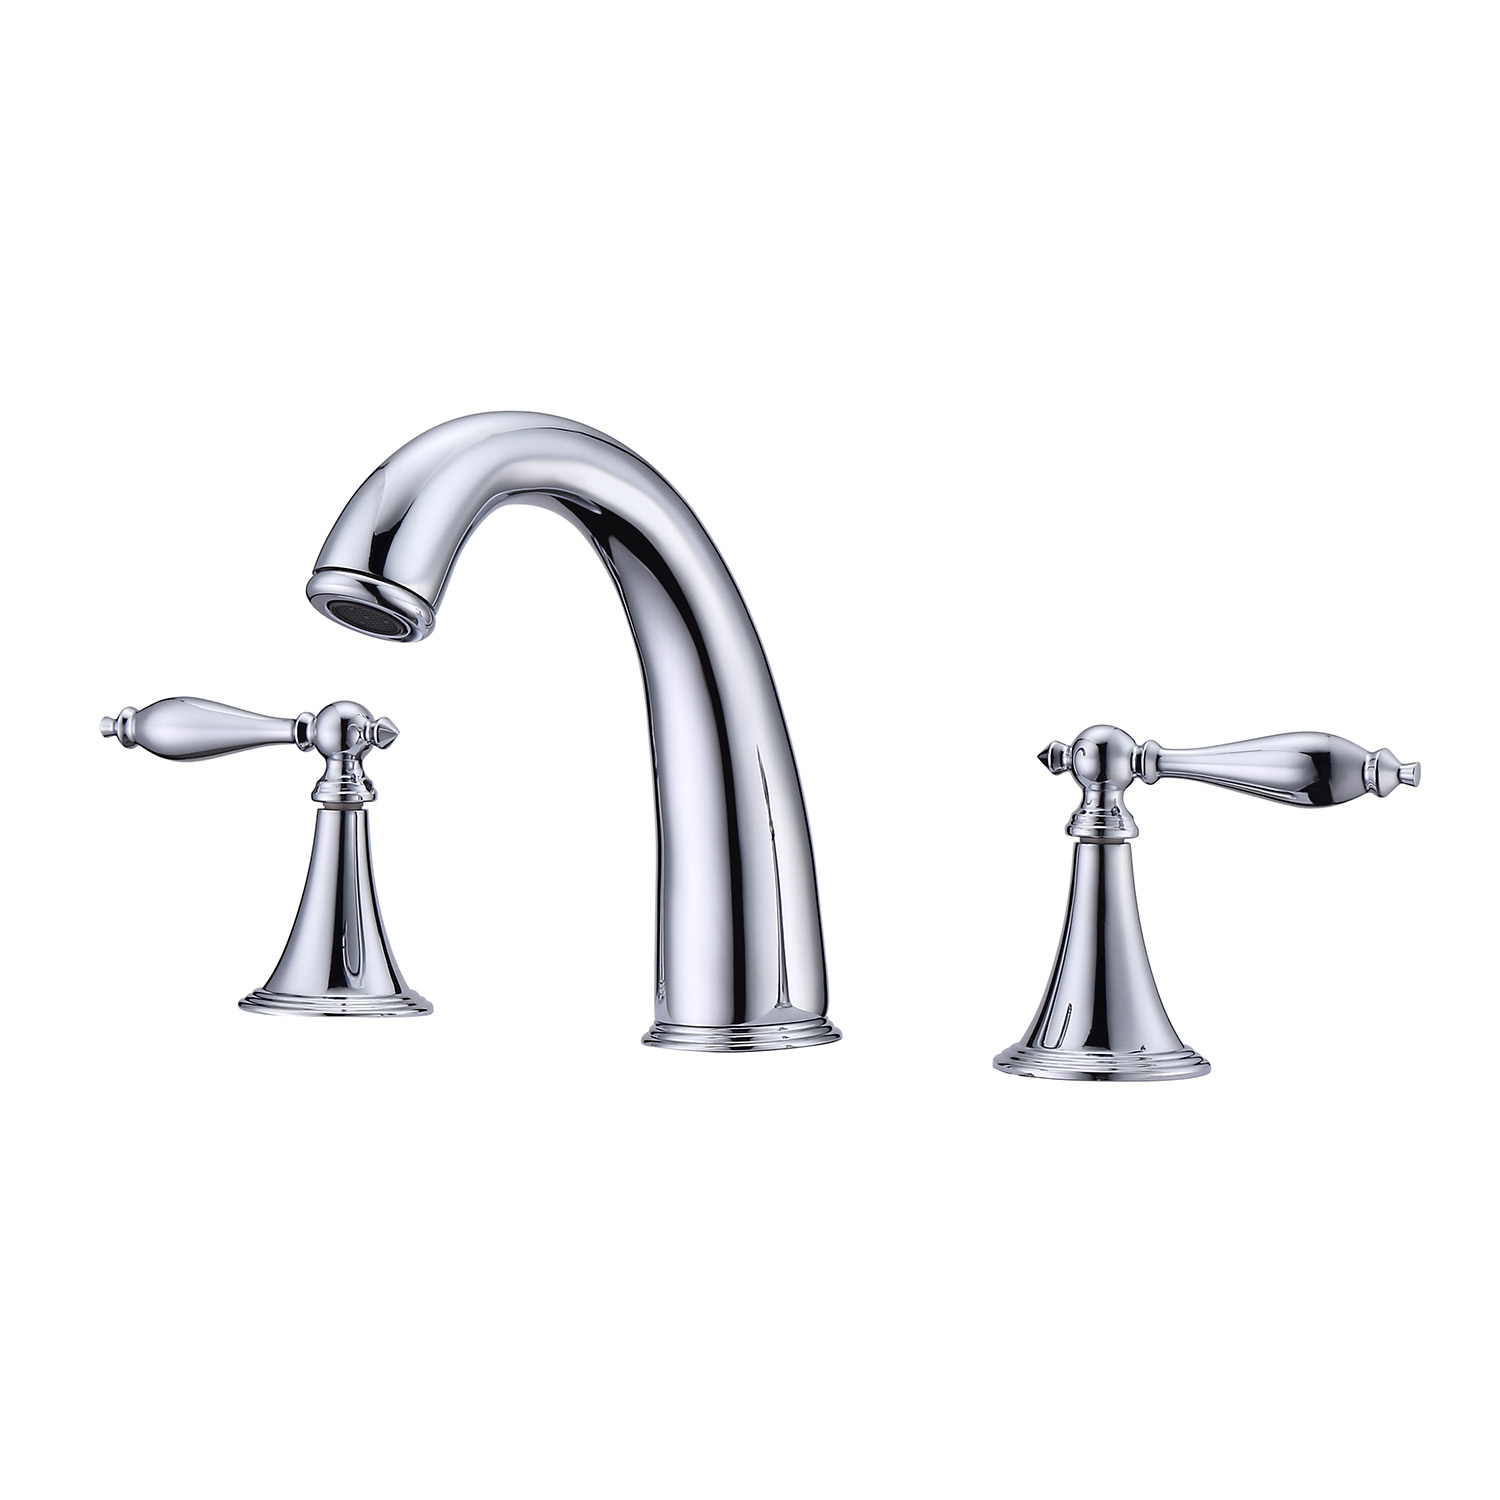 Virtu USA - PS-265-PC - Virtu USA PS-26 Faucet